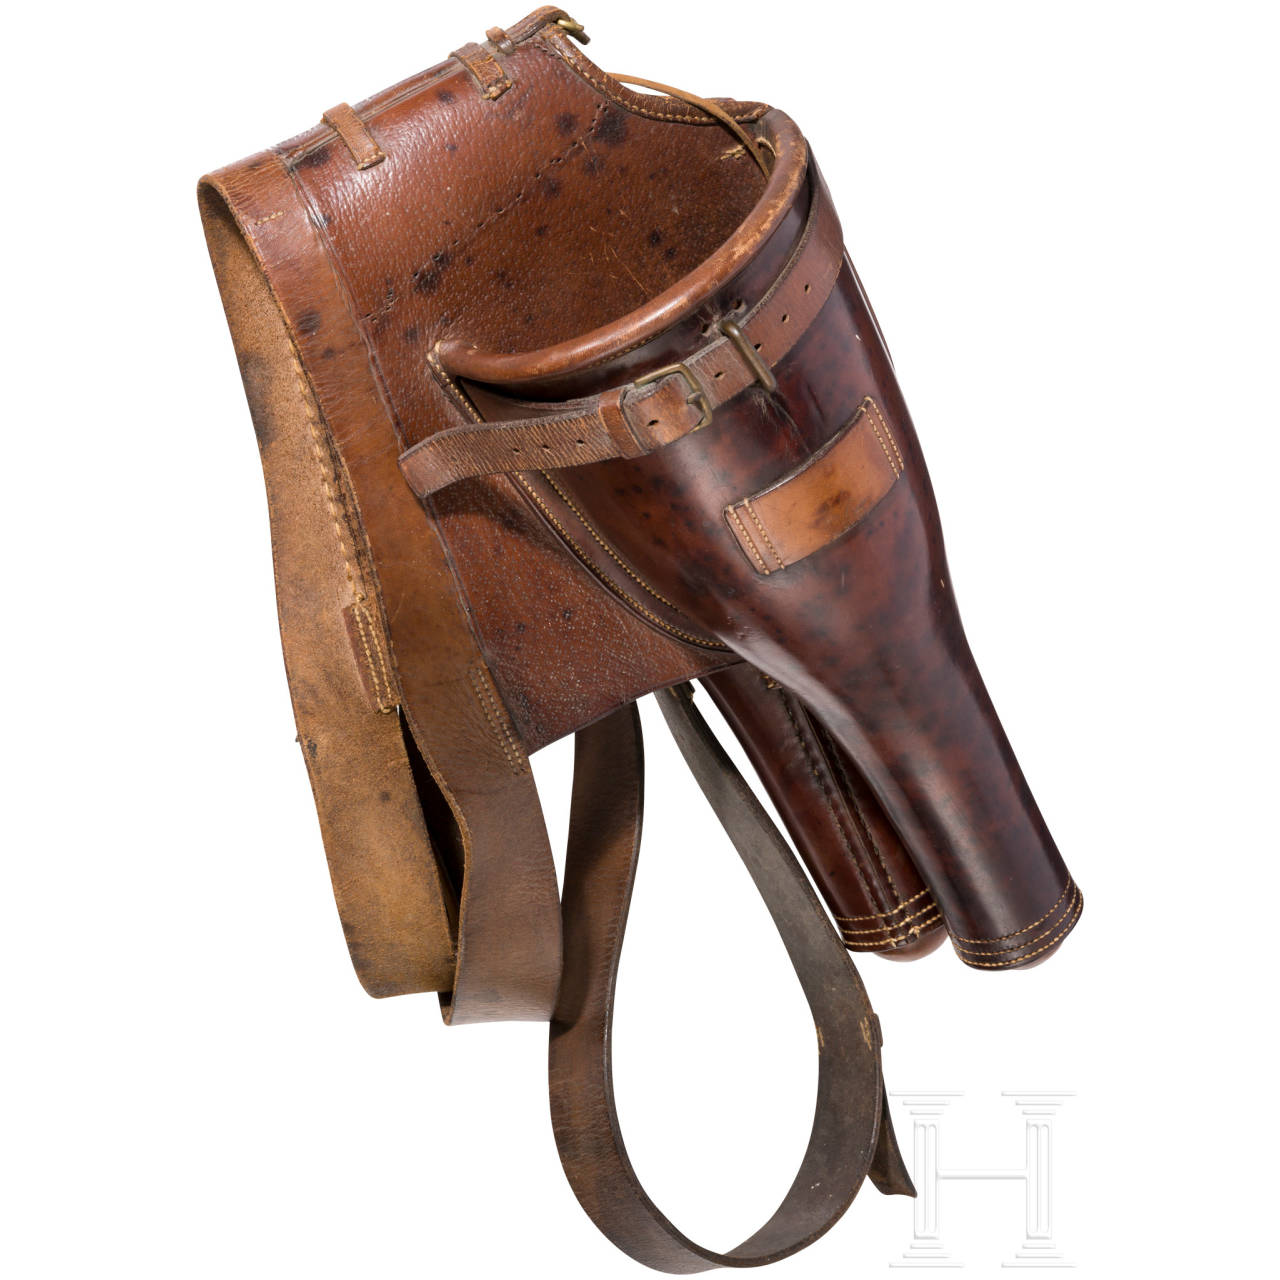 A pair of cavalry pistol holsters, 1st half of the 19th century